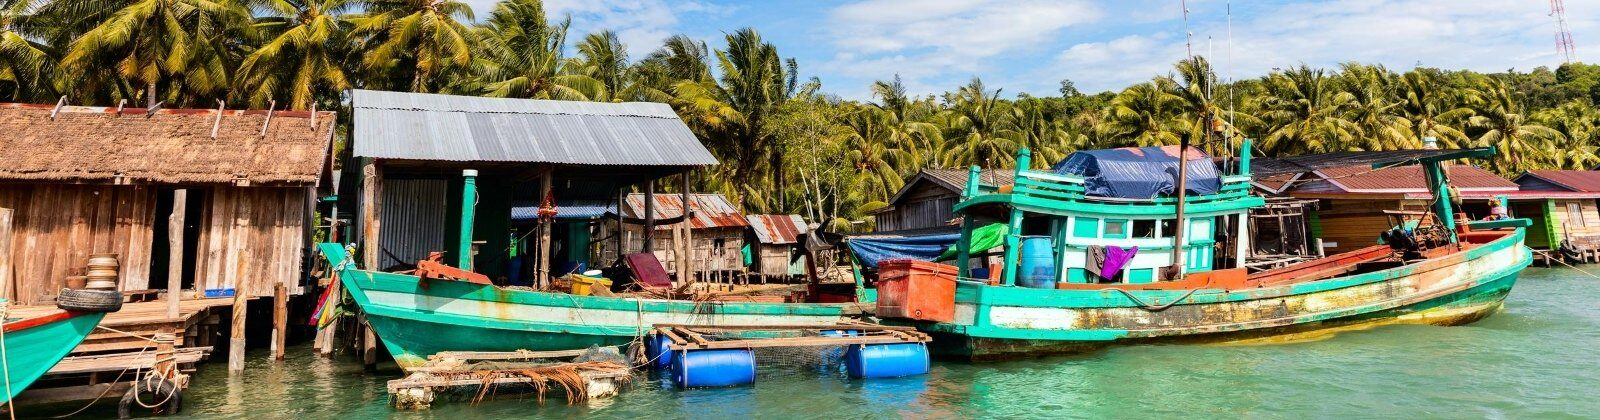 wooden boats in a cambodian floating village